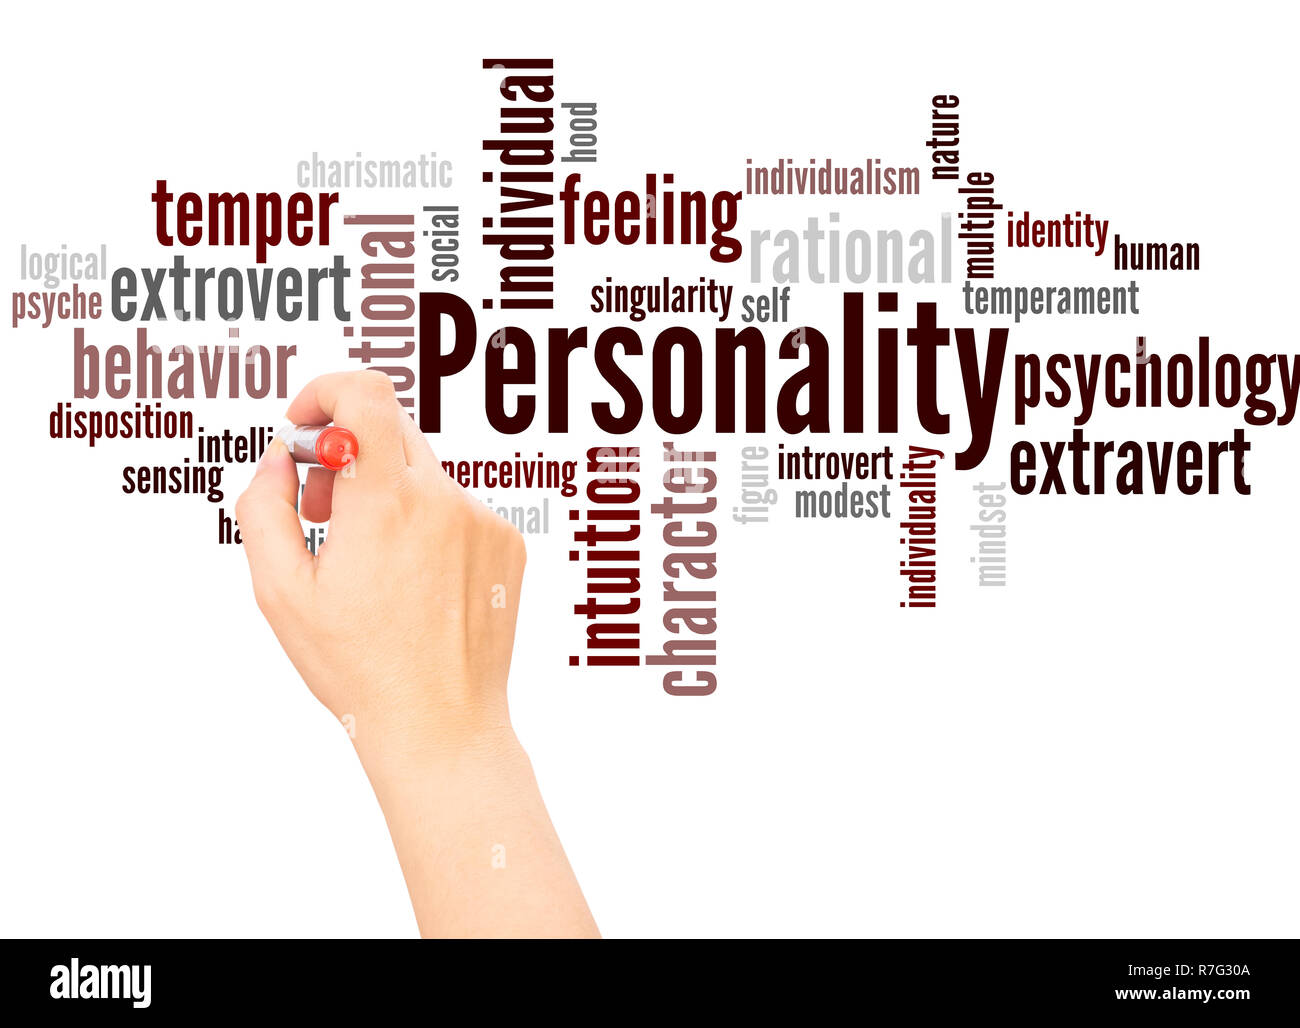 Personality word cloud hand writing concept on white background. - Stock Image